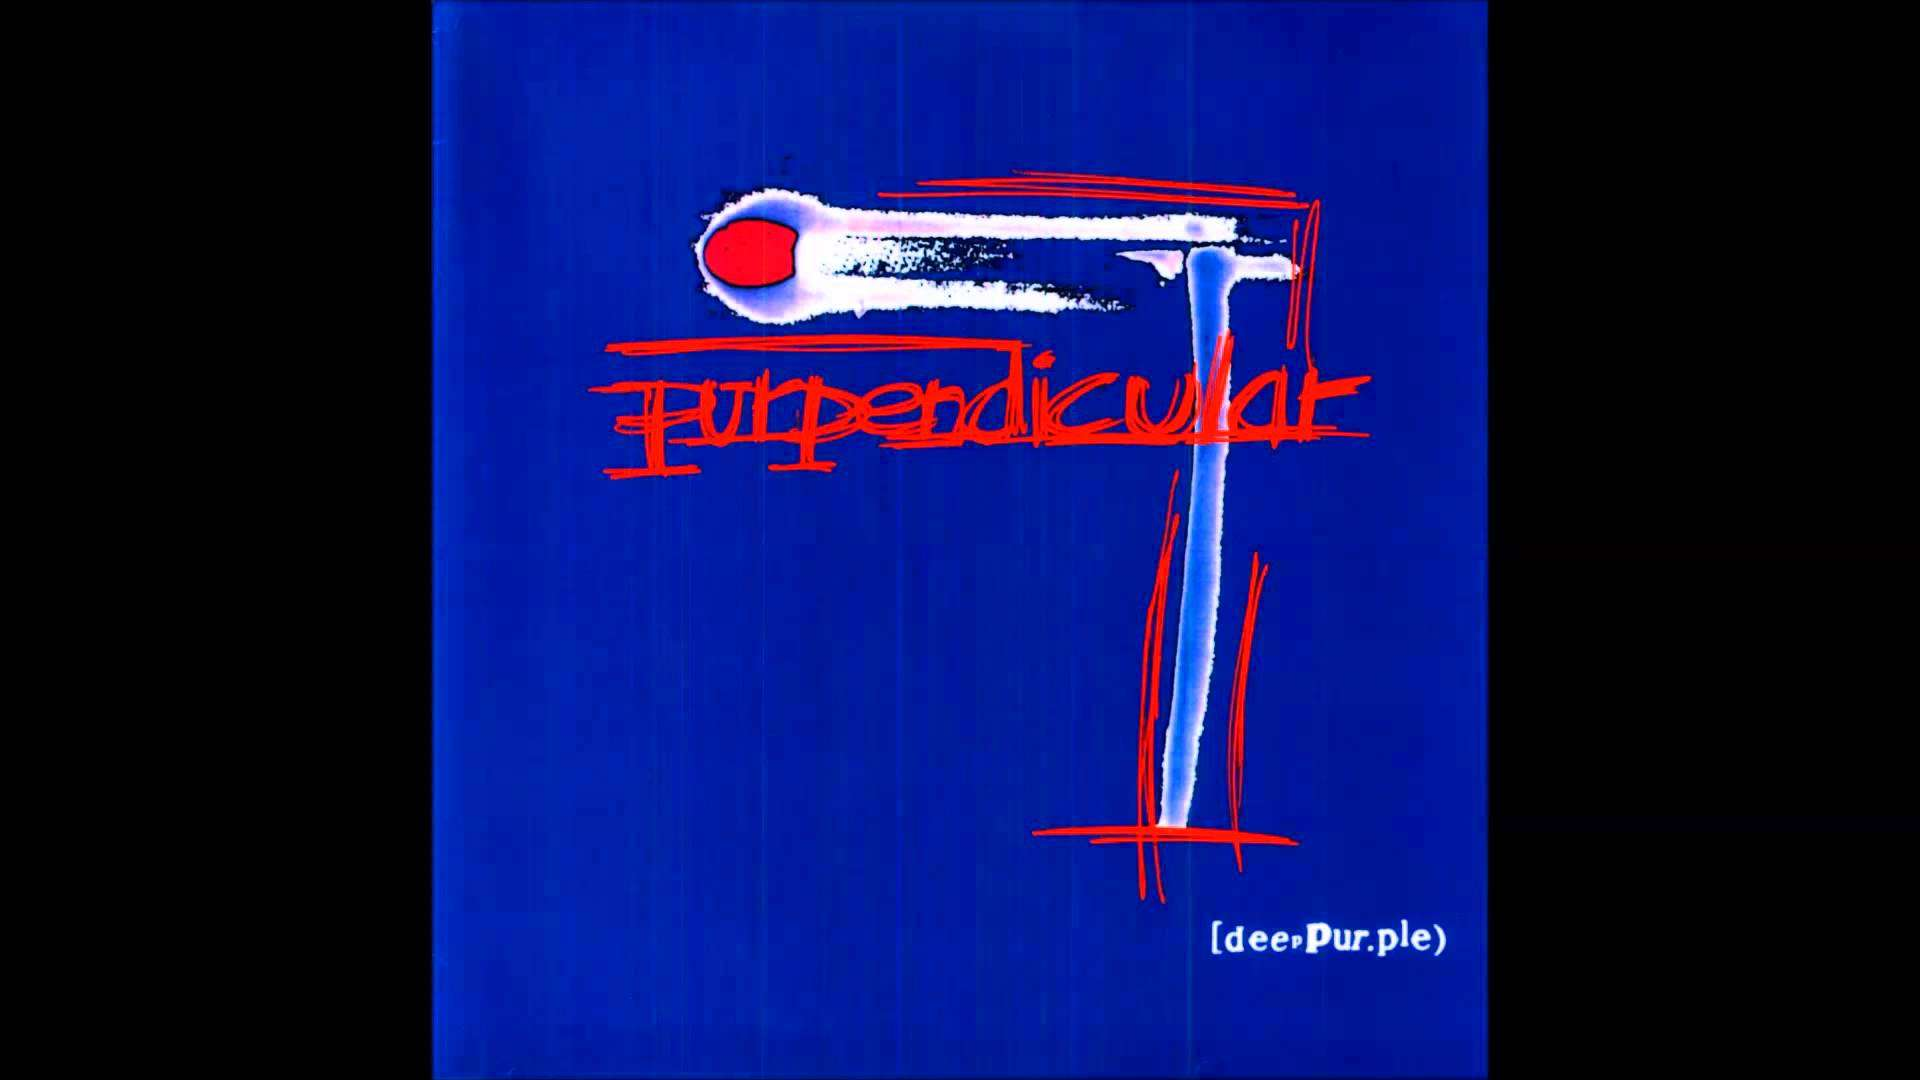 Deep Purple - Vavoom: Ted The Mechanic (Purpendicular 01) - YouTube